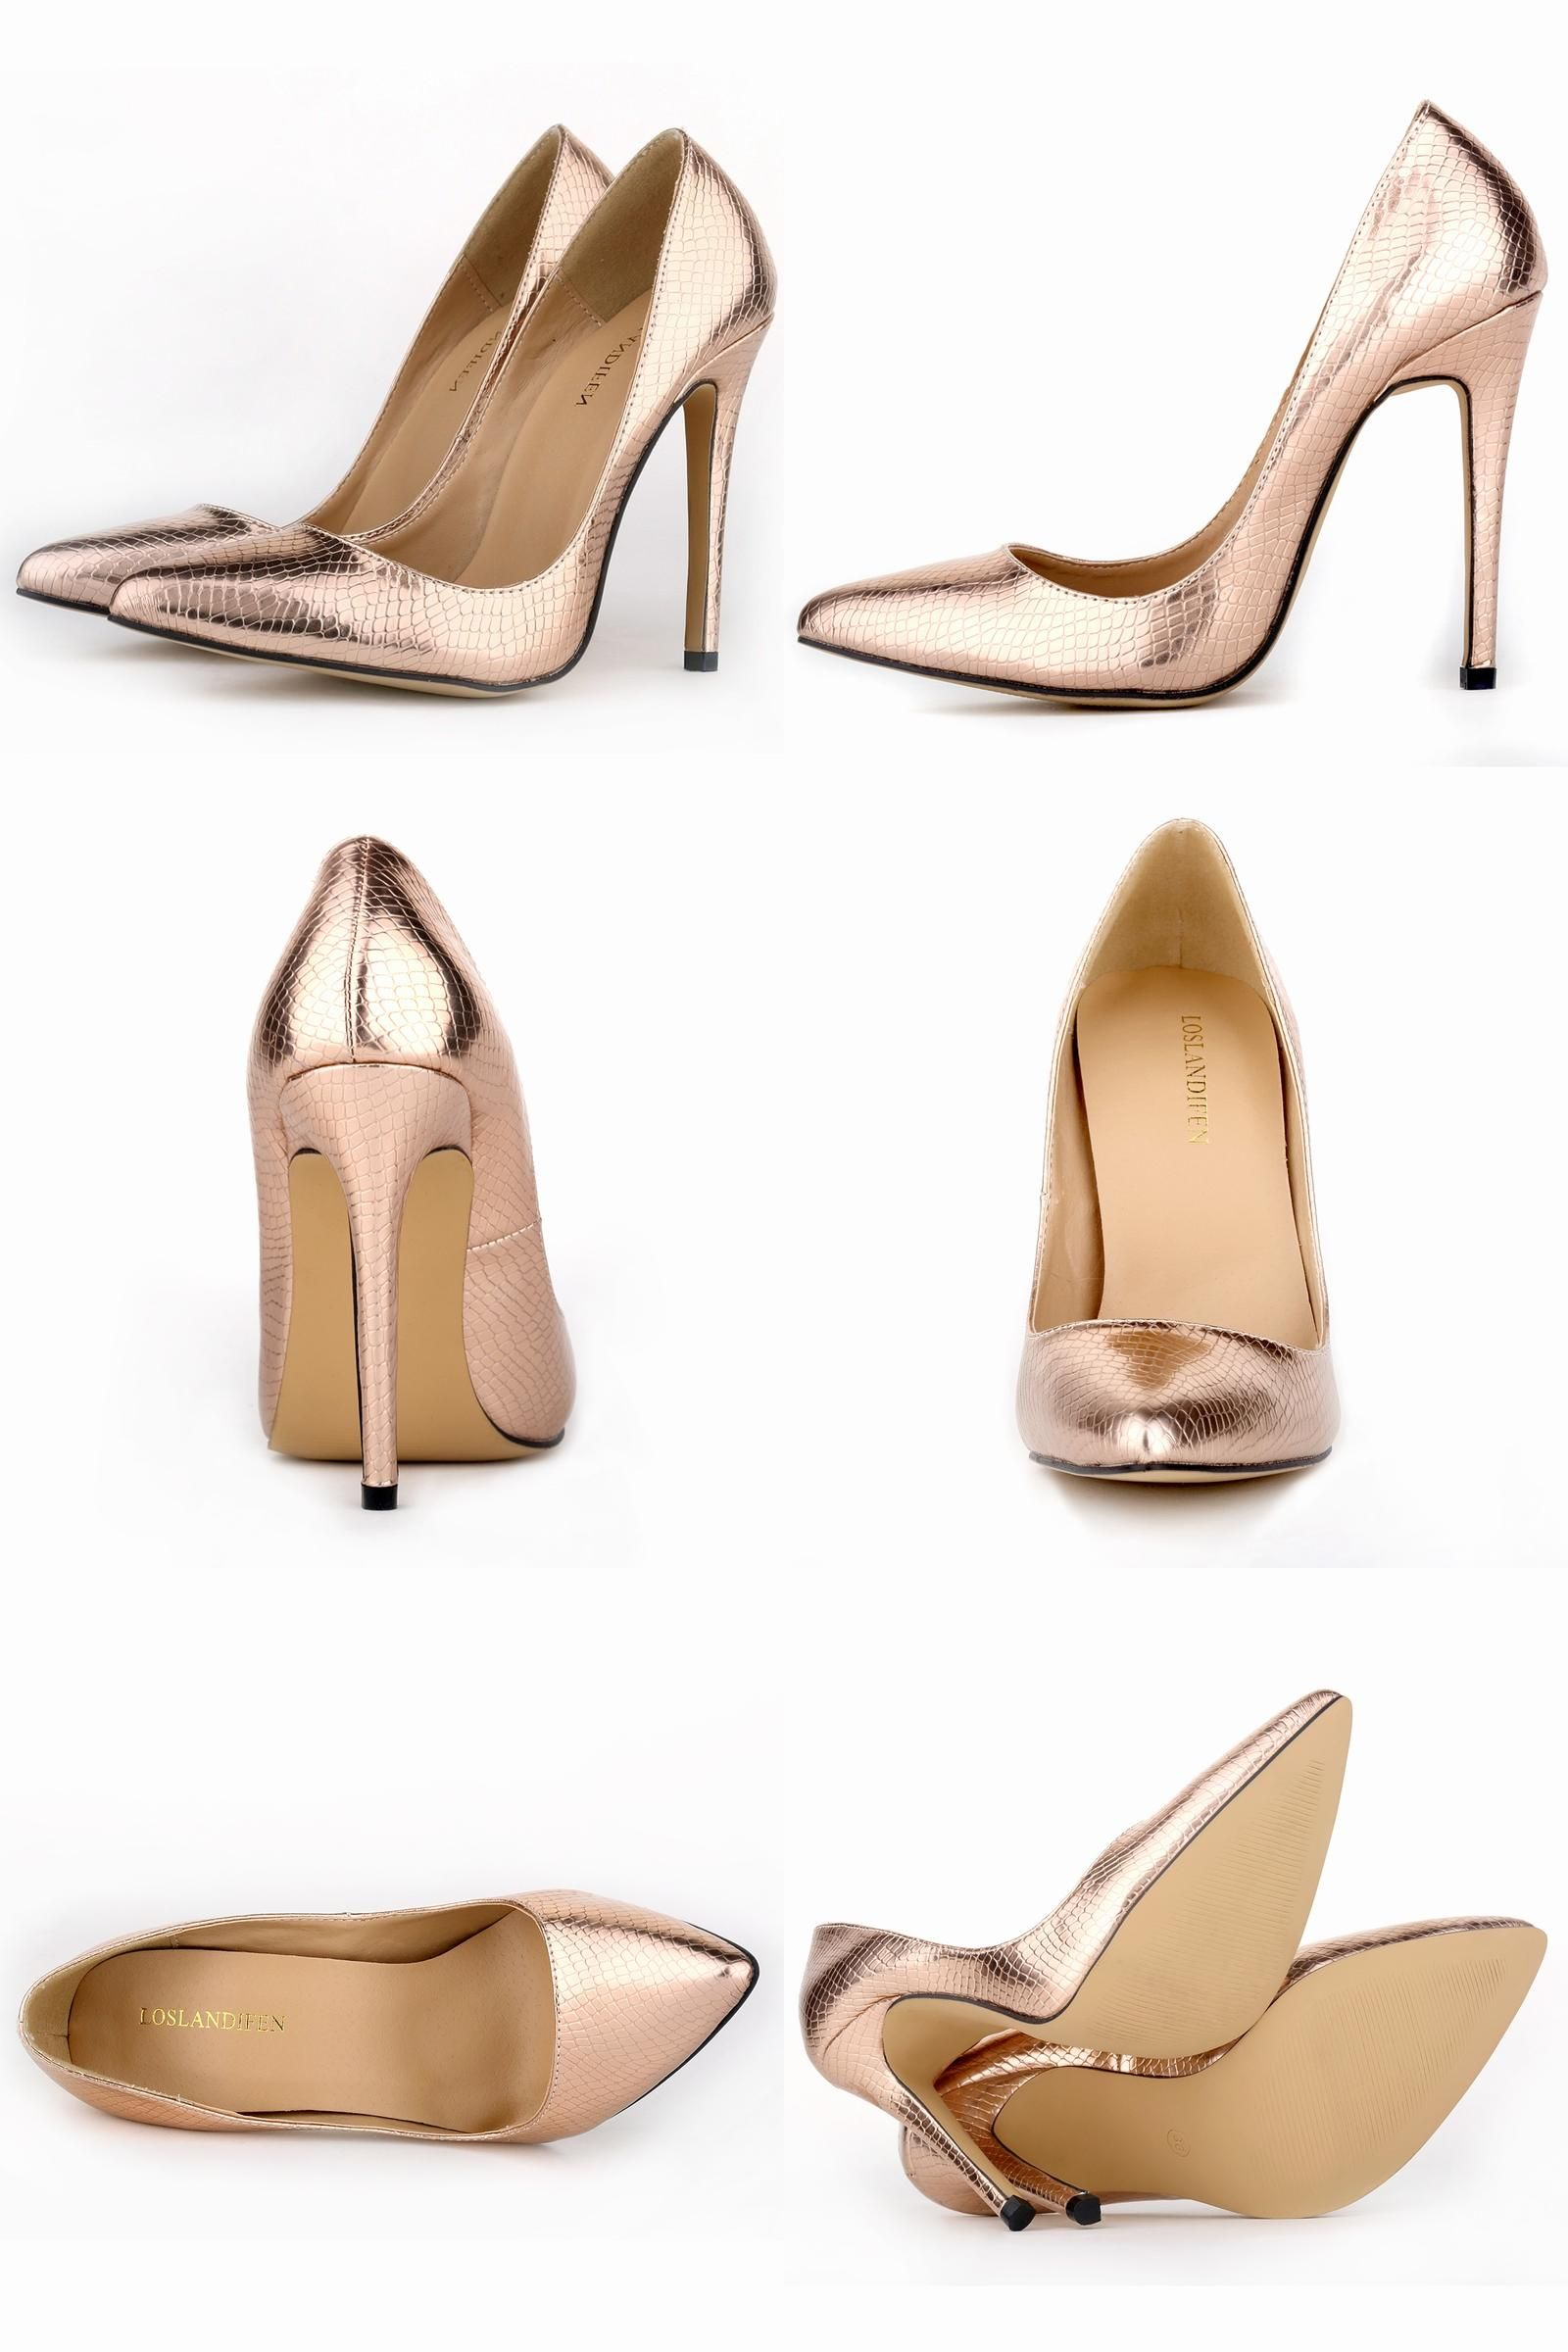 475bced3a15c  Visit to Buy  New Loslandifen women pumps high heels shoes woman pointed  toe sexy